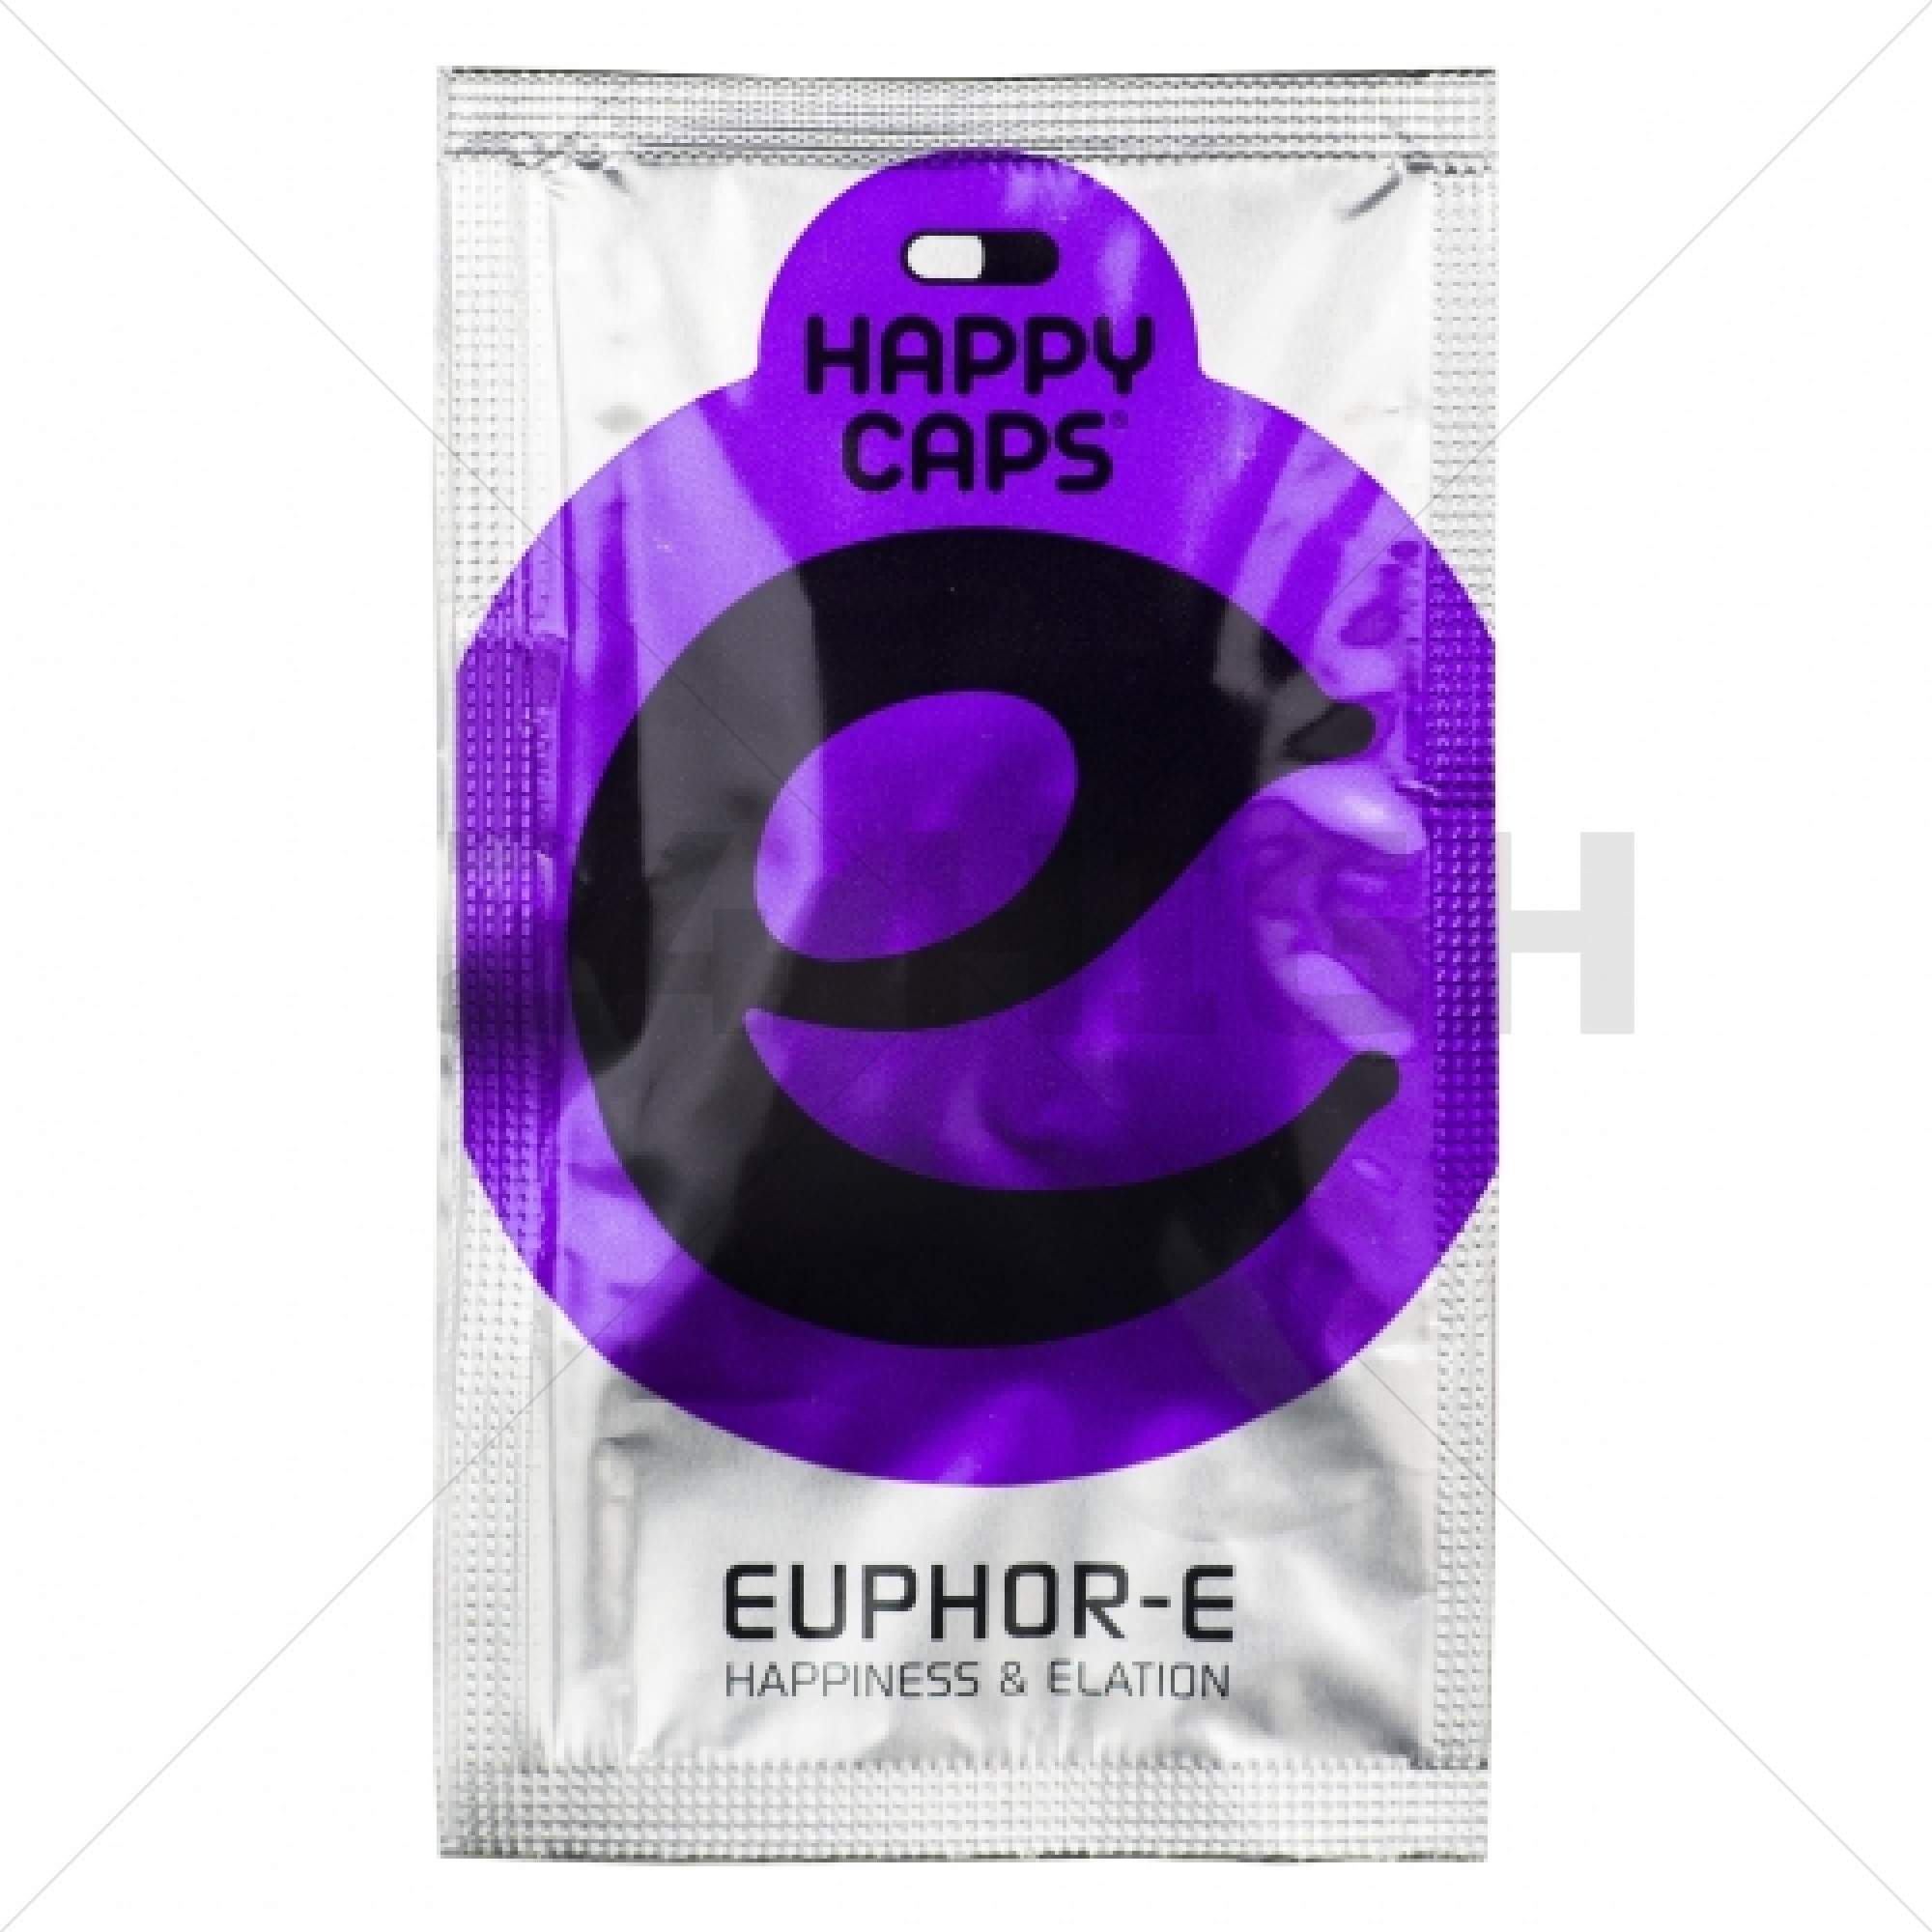 Euphor E Happy Caps